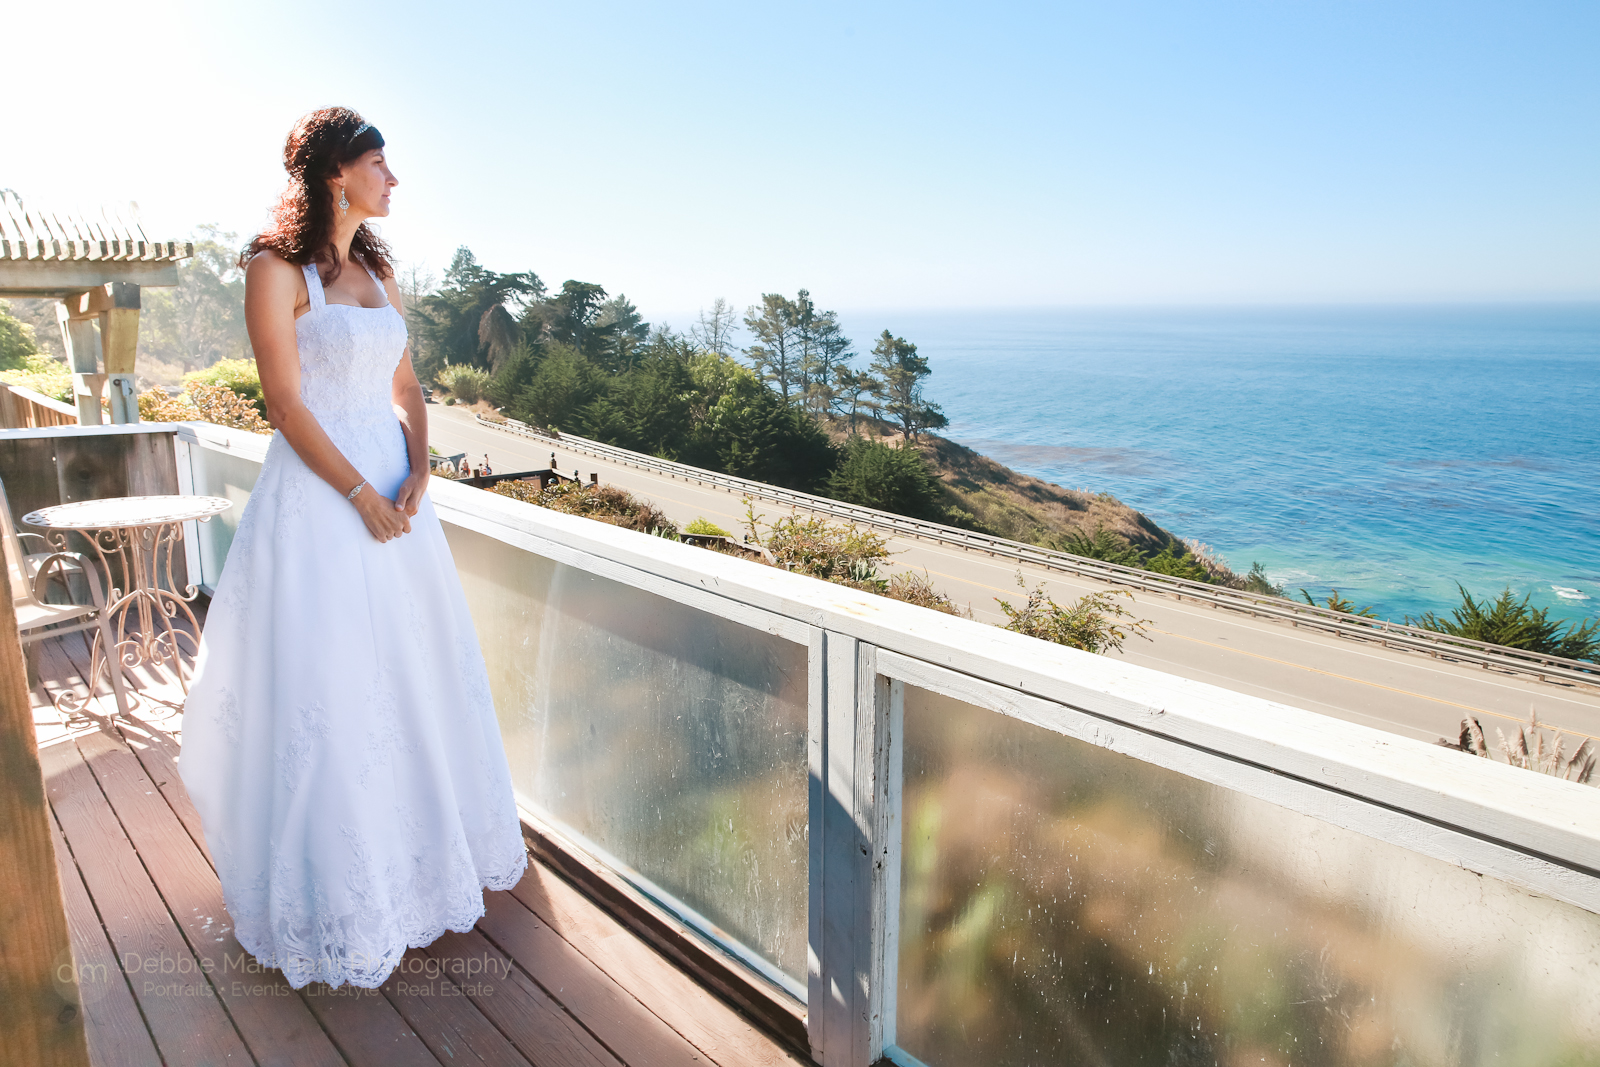 destination-wedding_small-wedding_big-sur_california-coast_ocean-view_gorda_wedding-photographer_debbie-markham-4110